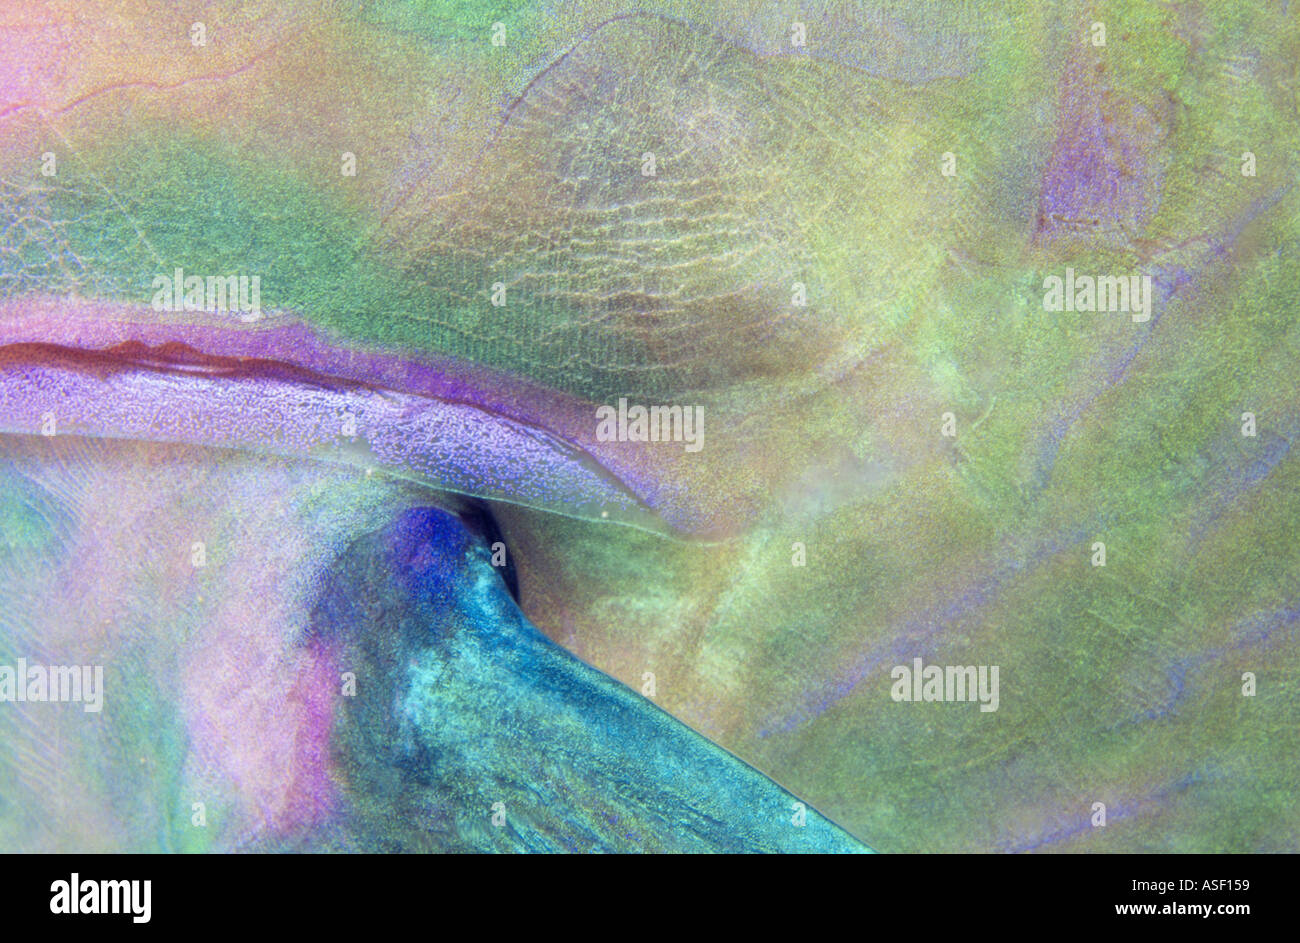 Close up detail of skin and fin of wrasse parrotfish underwater Night Tonga - Stock Image